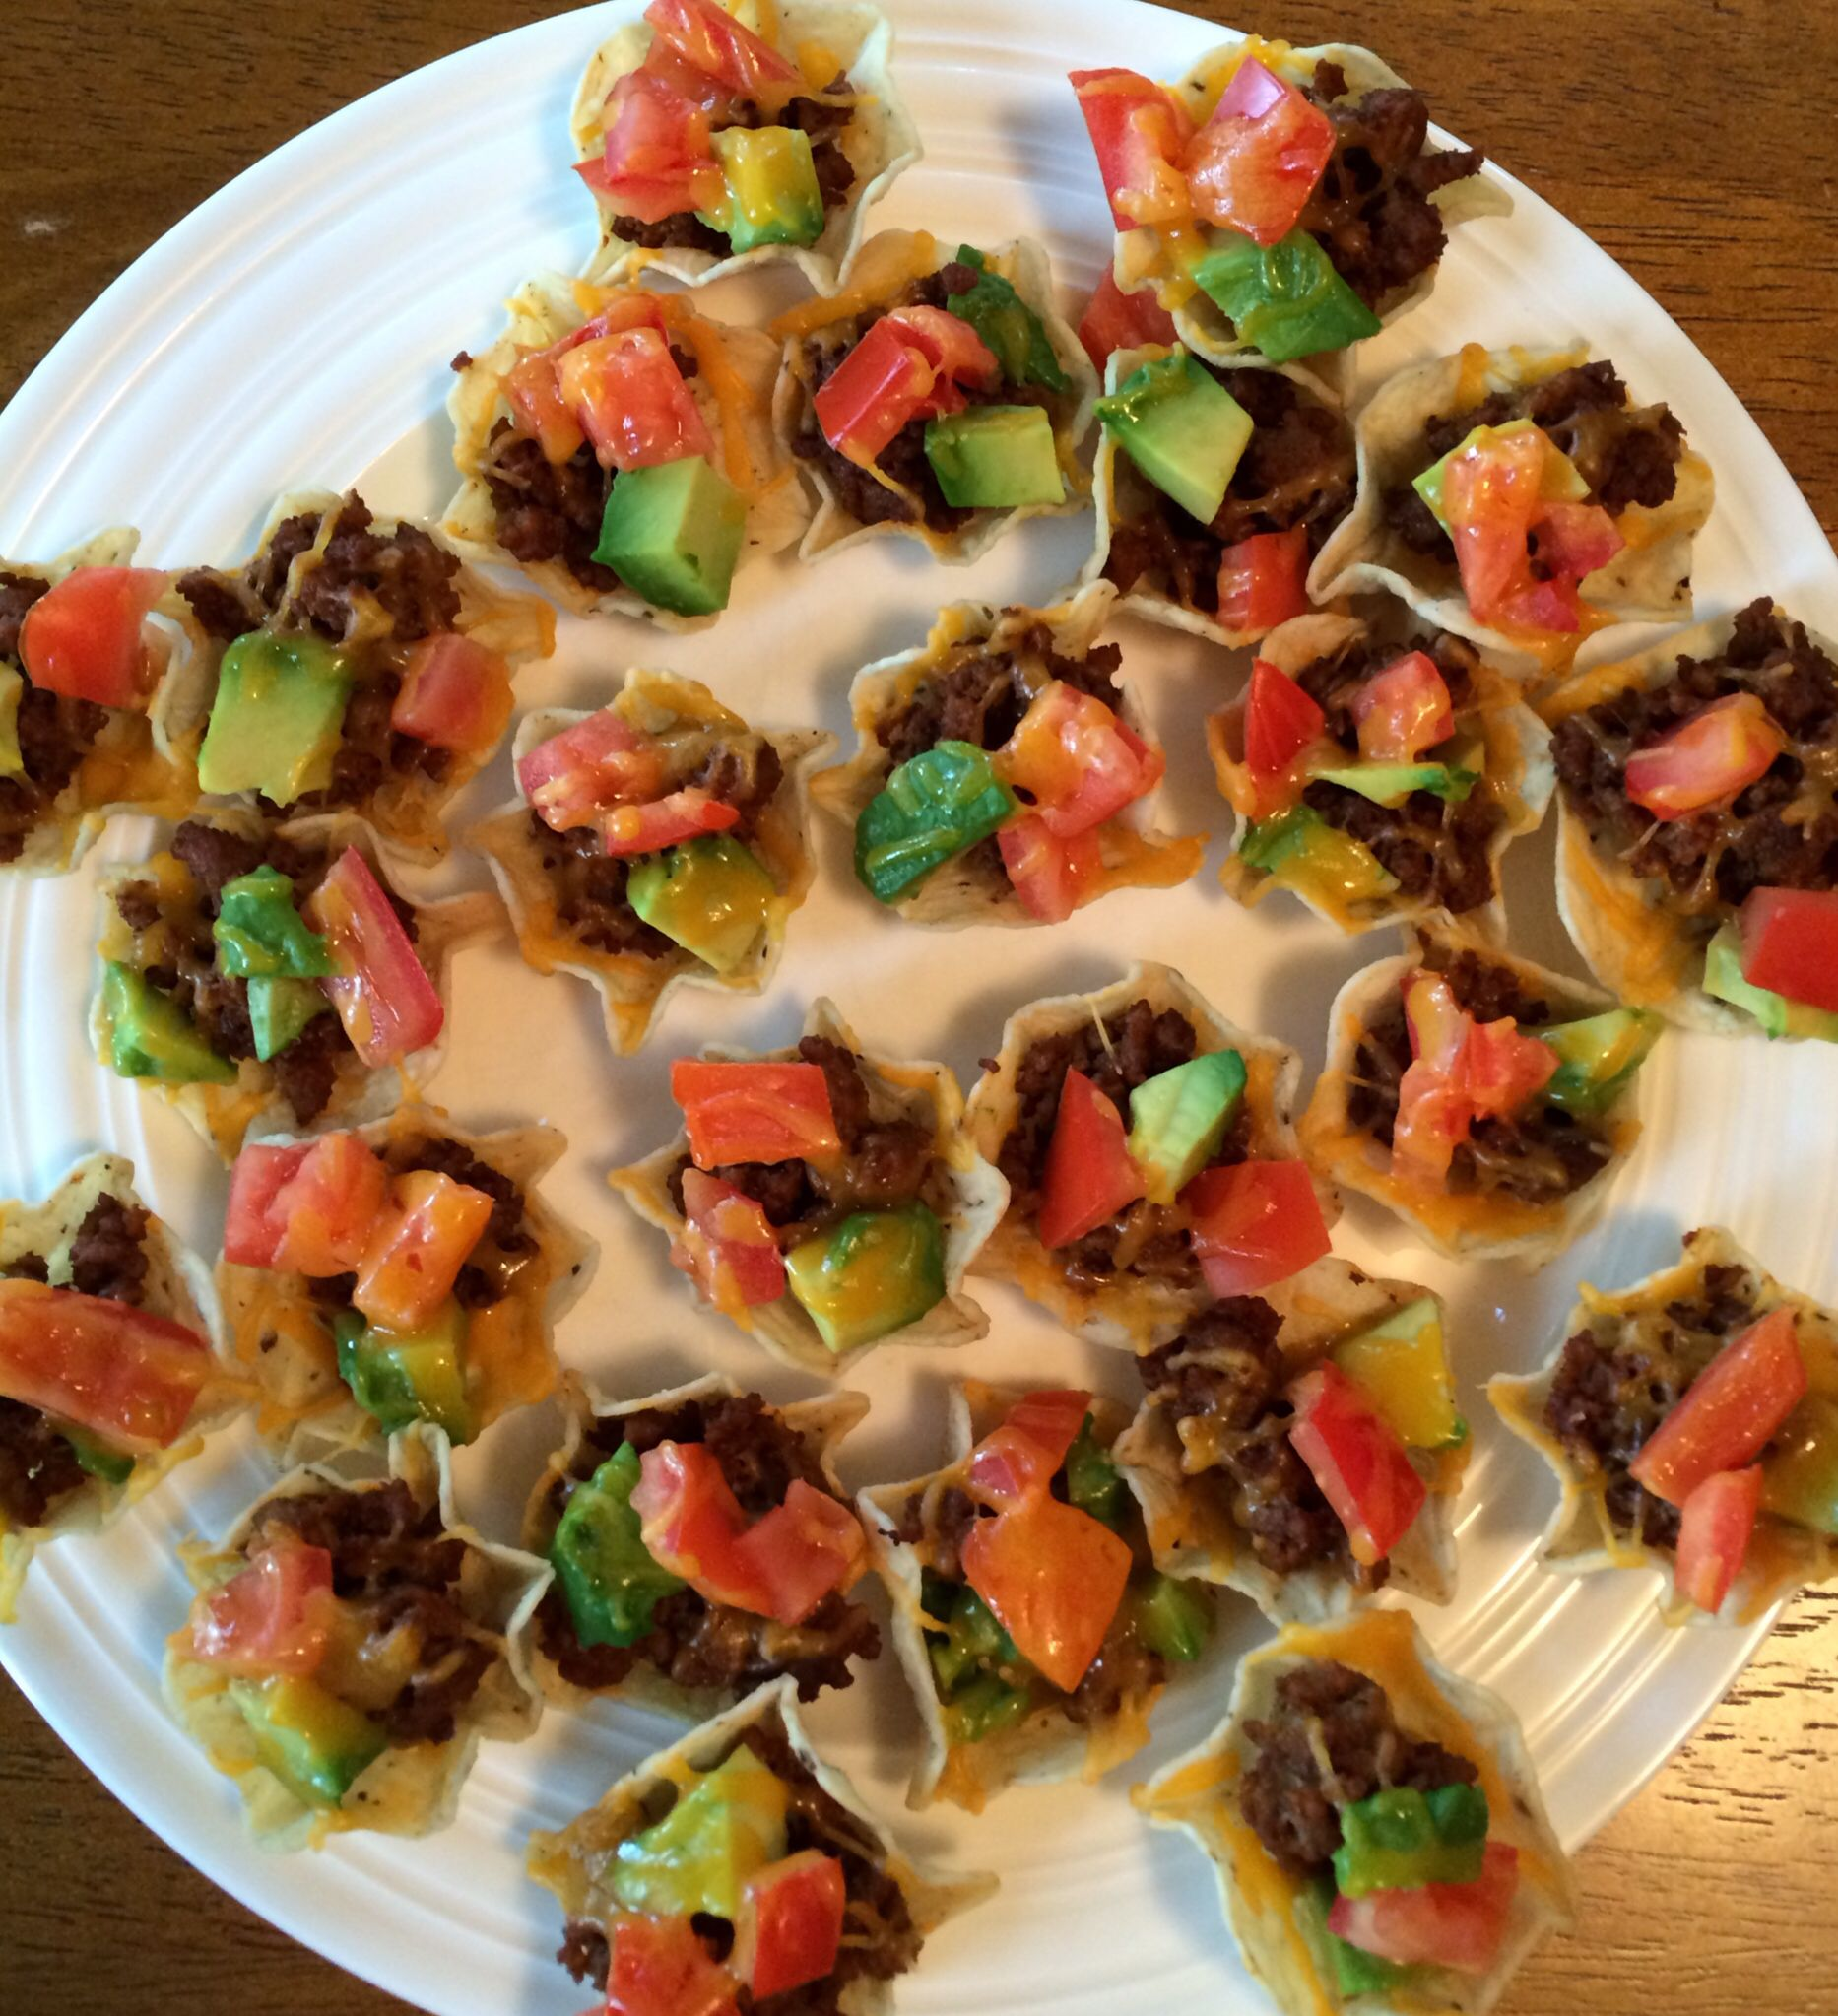 Simple taco bites. Chips+taco meat+tomato+avocado+cheese. Bake at 350 for 4 min add a bit of sour cream and have a light dinner or great appetizer. Mexican dish